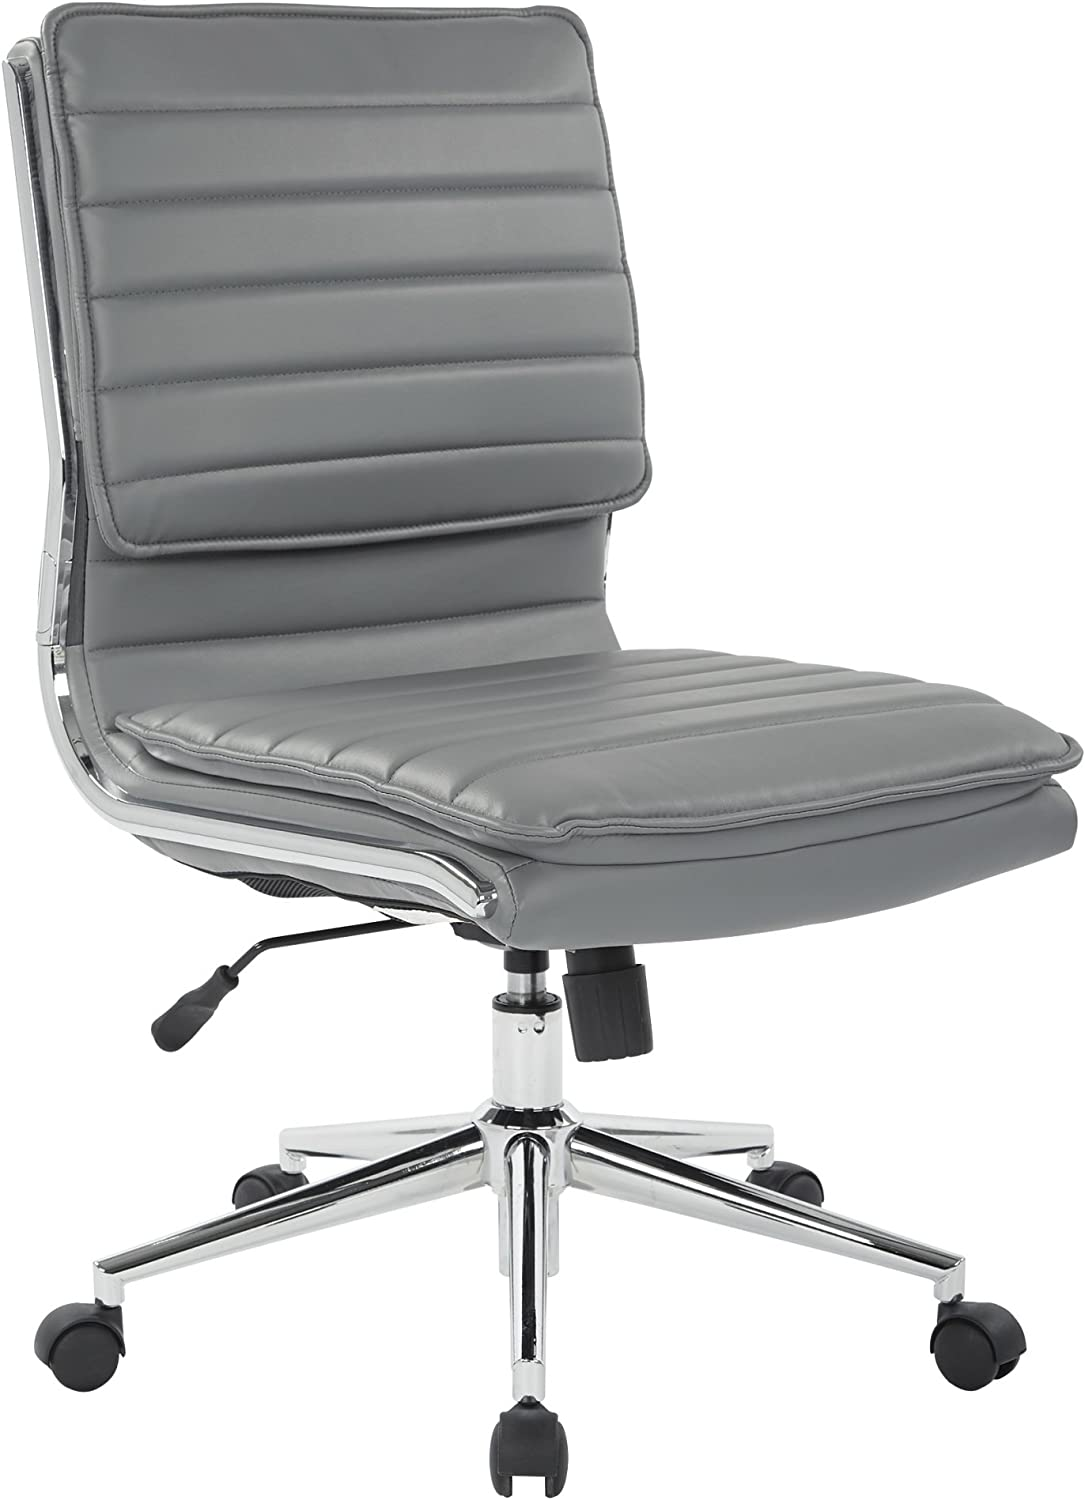 Office Star Faux Leather Armless Mid Back Managers Chair with Chrome Base, Charcoal